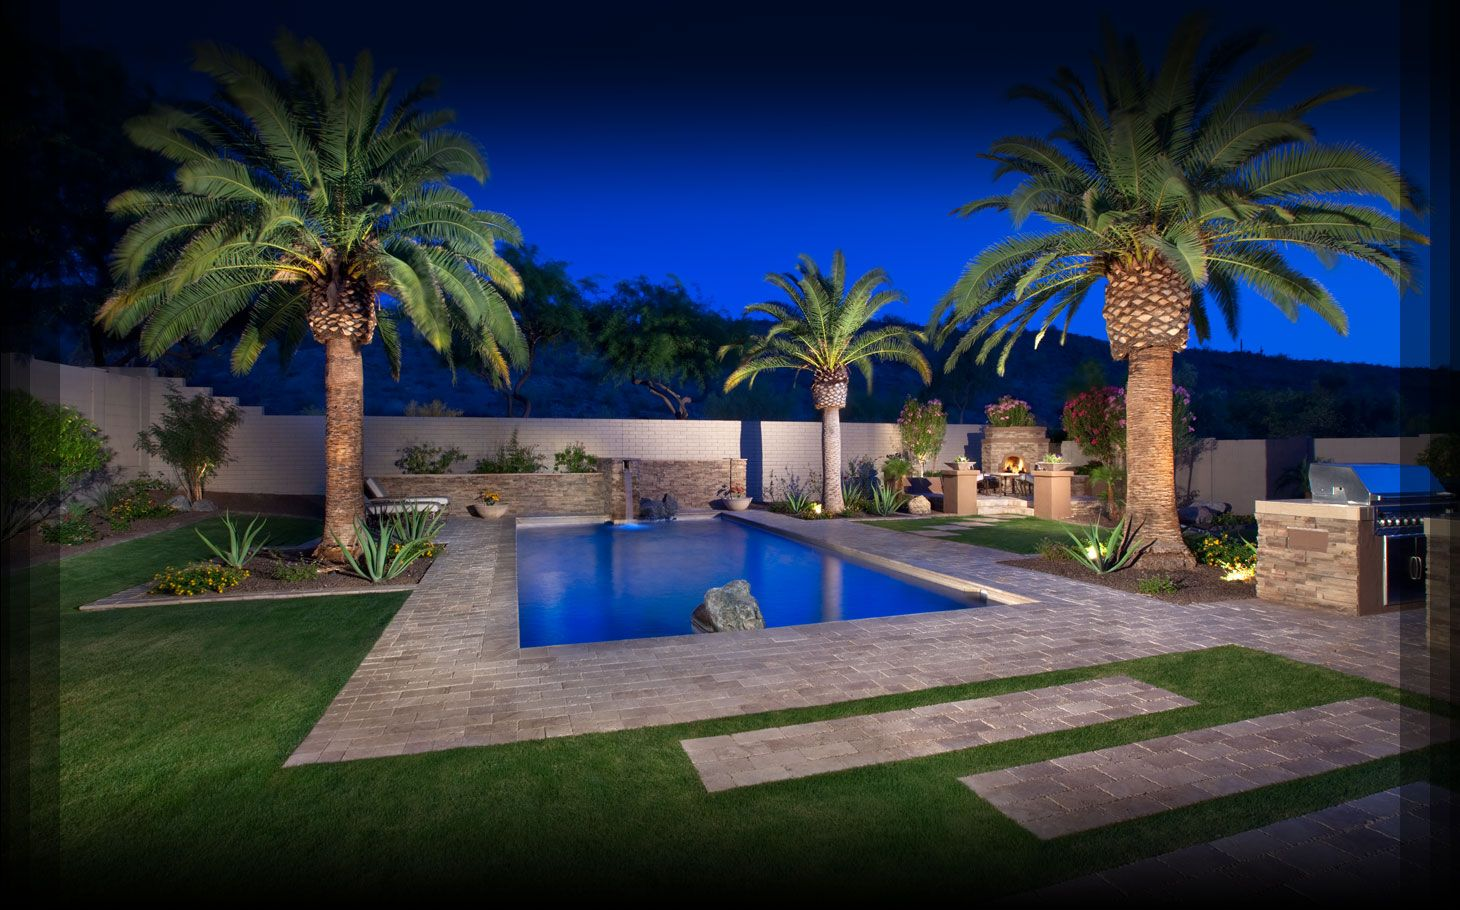 desert pool landscaping arizona phoenix pool. Black Bedroom Furniture Sets. Home Design Ideas